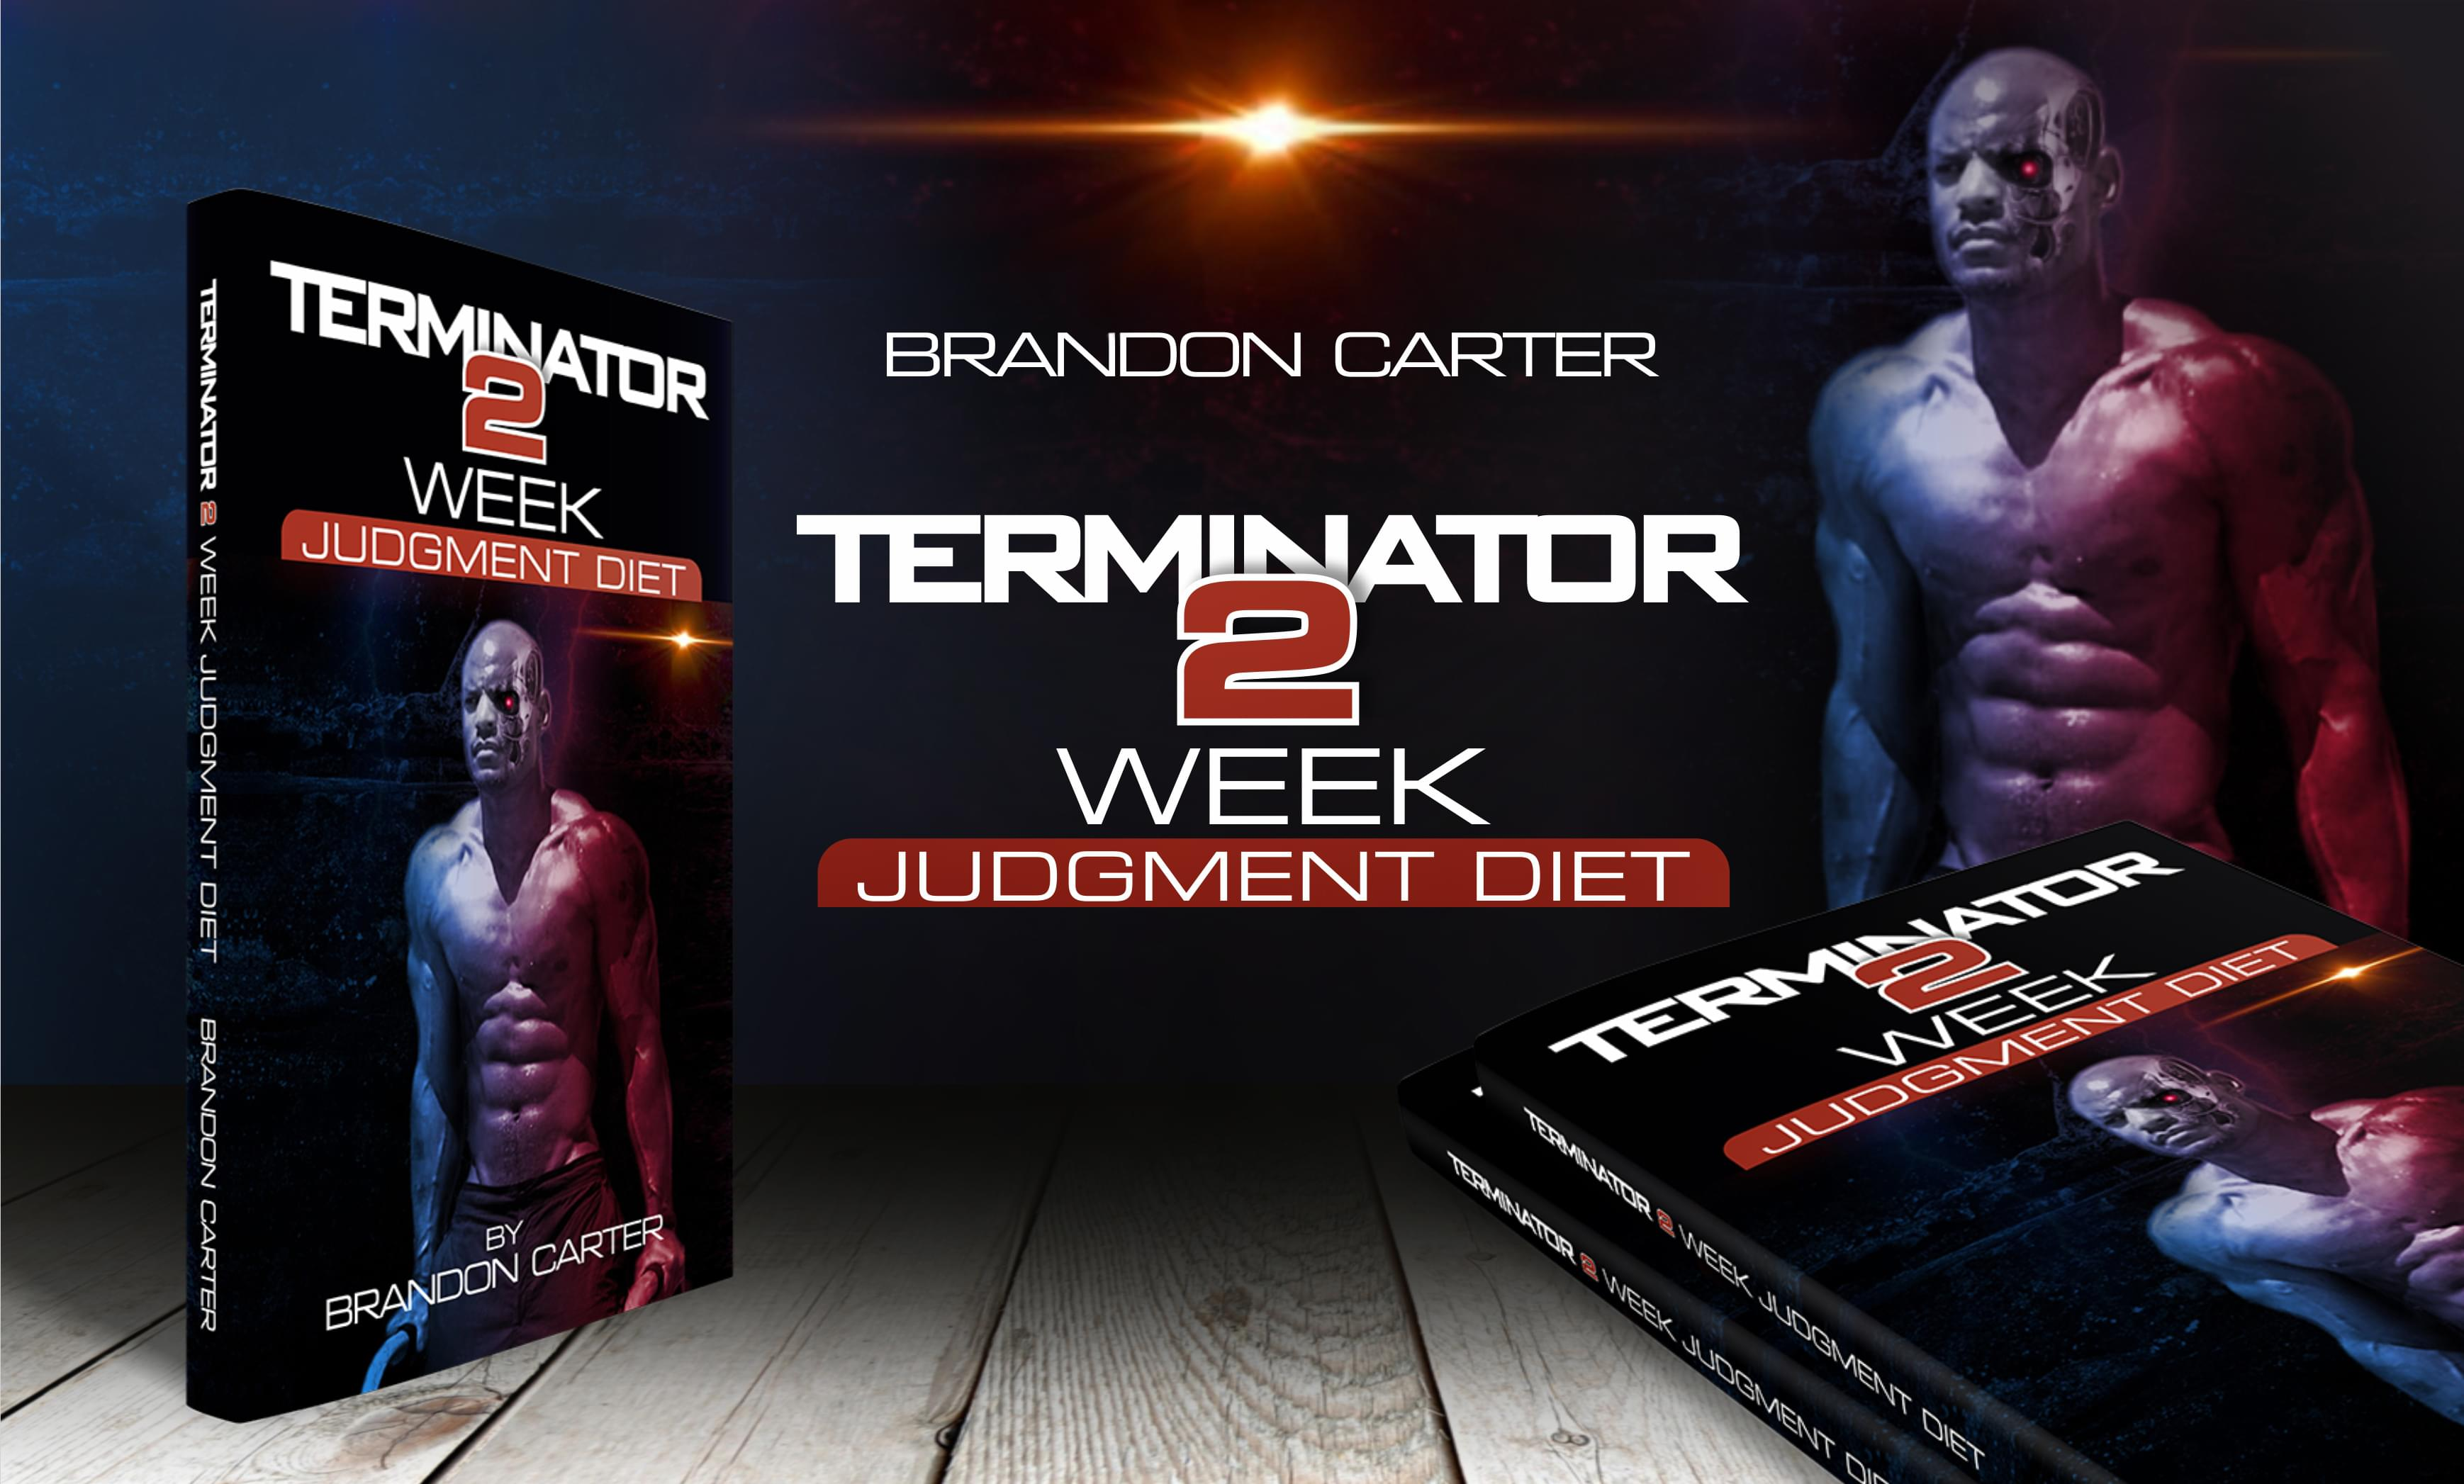 terminator judgement diet plan brandon carter